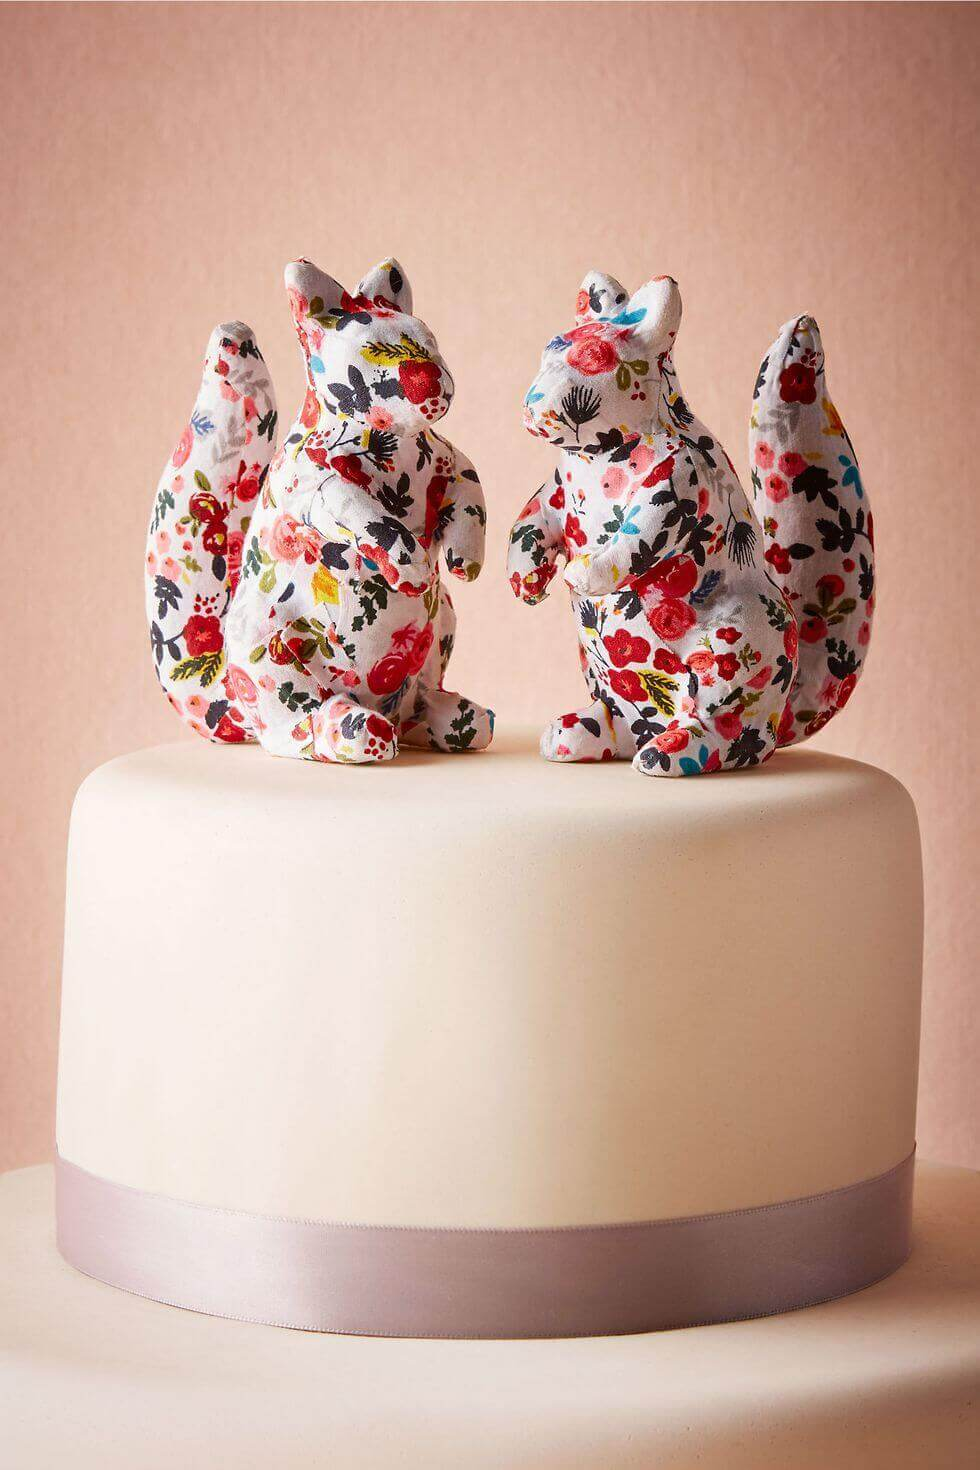 Wedding cake toppers are the main topic this time, but you can find other amazing posts on wedding planning on our site, so do stick around. More wedding ideas go to wedwithbliss.com